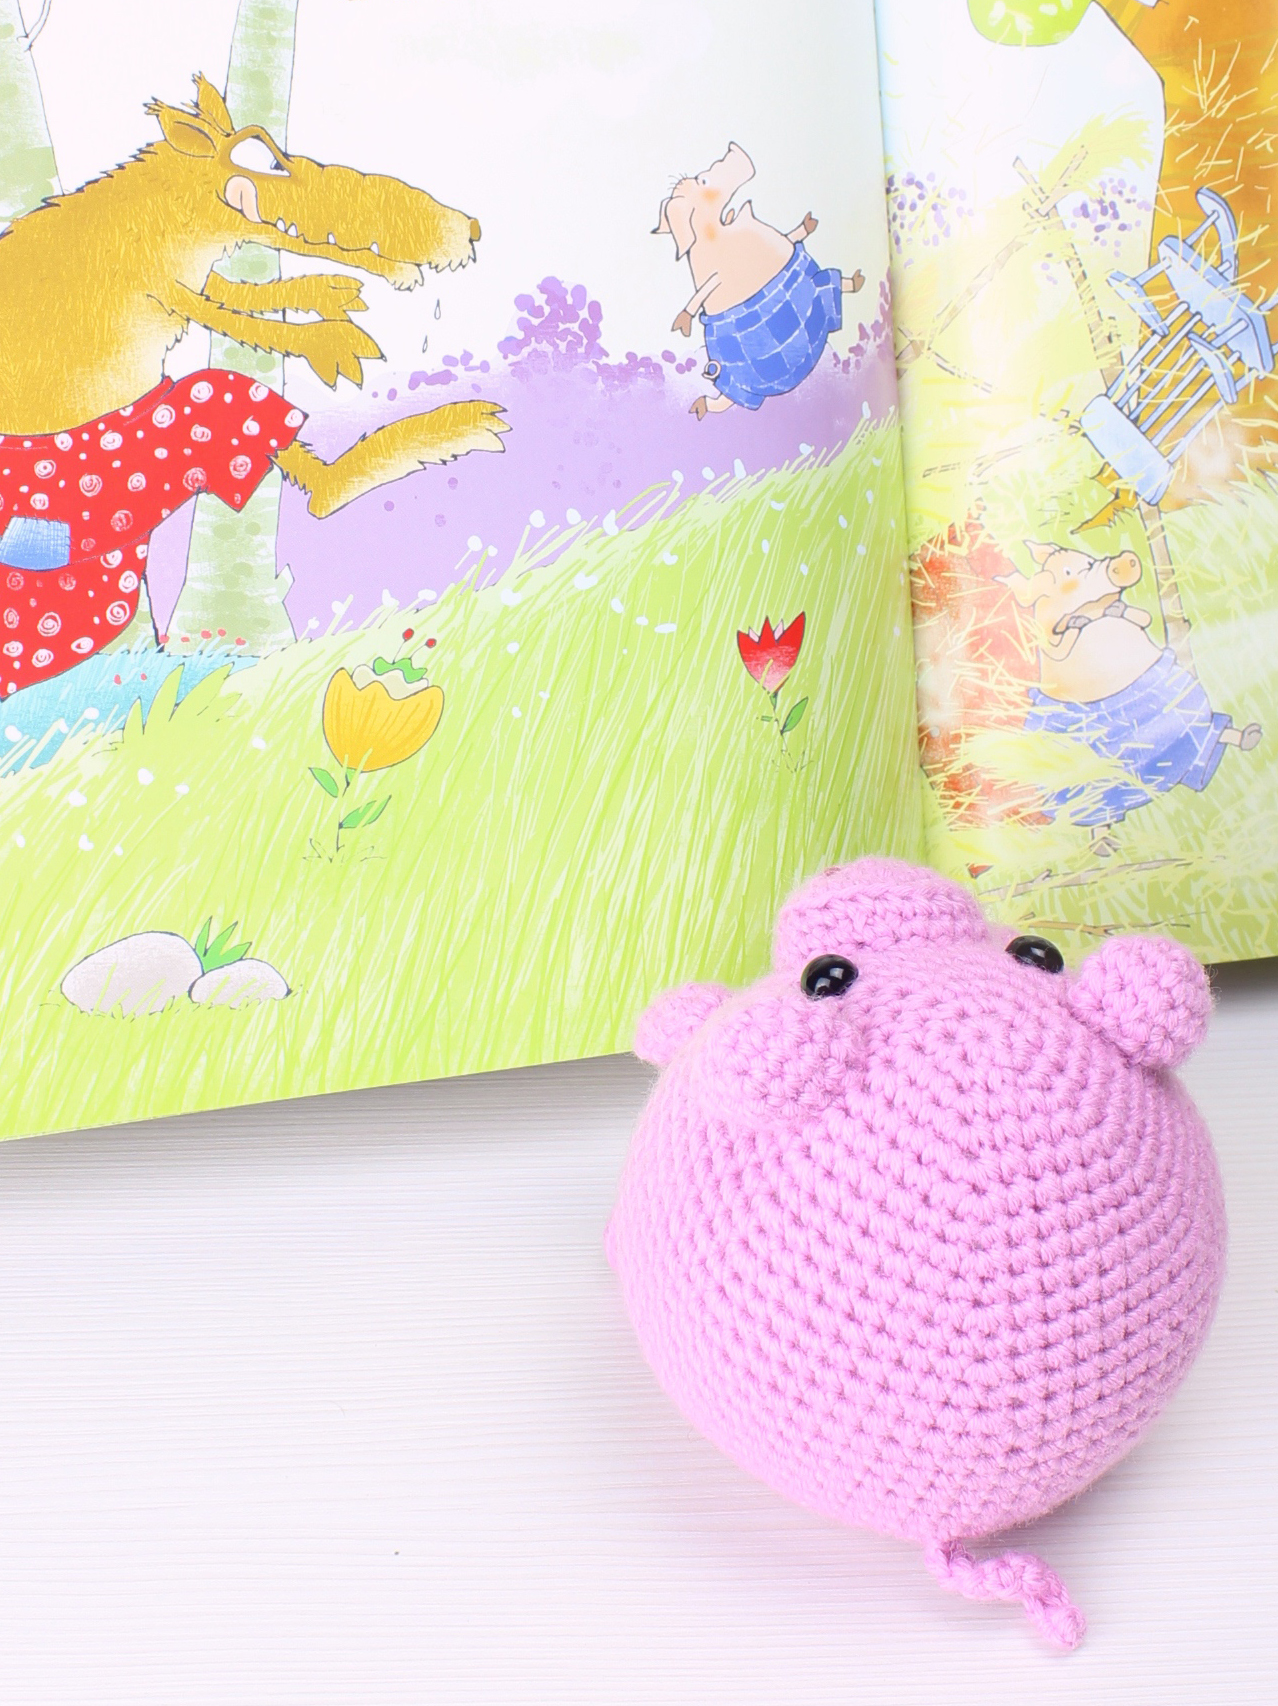 Puffy the little pig – Tremendu Crochet